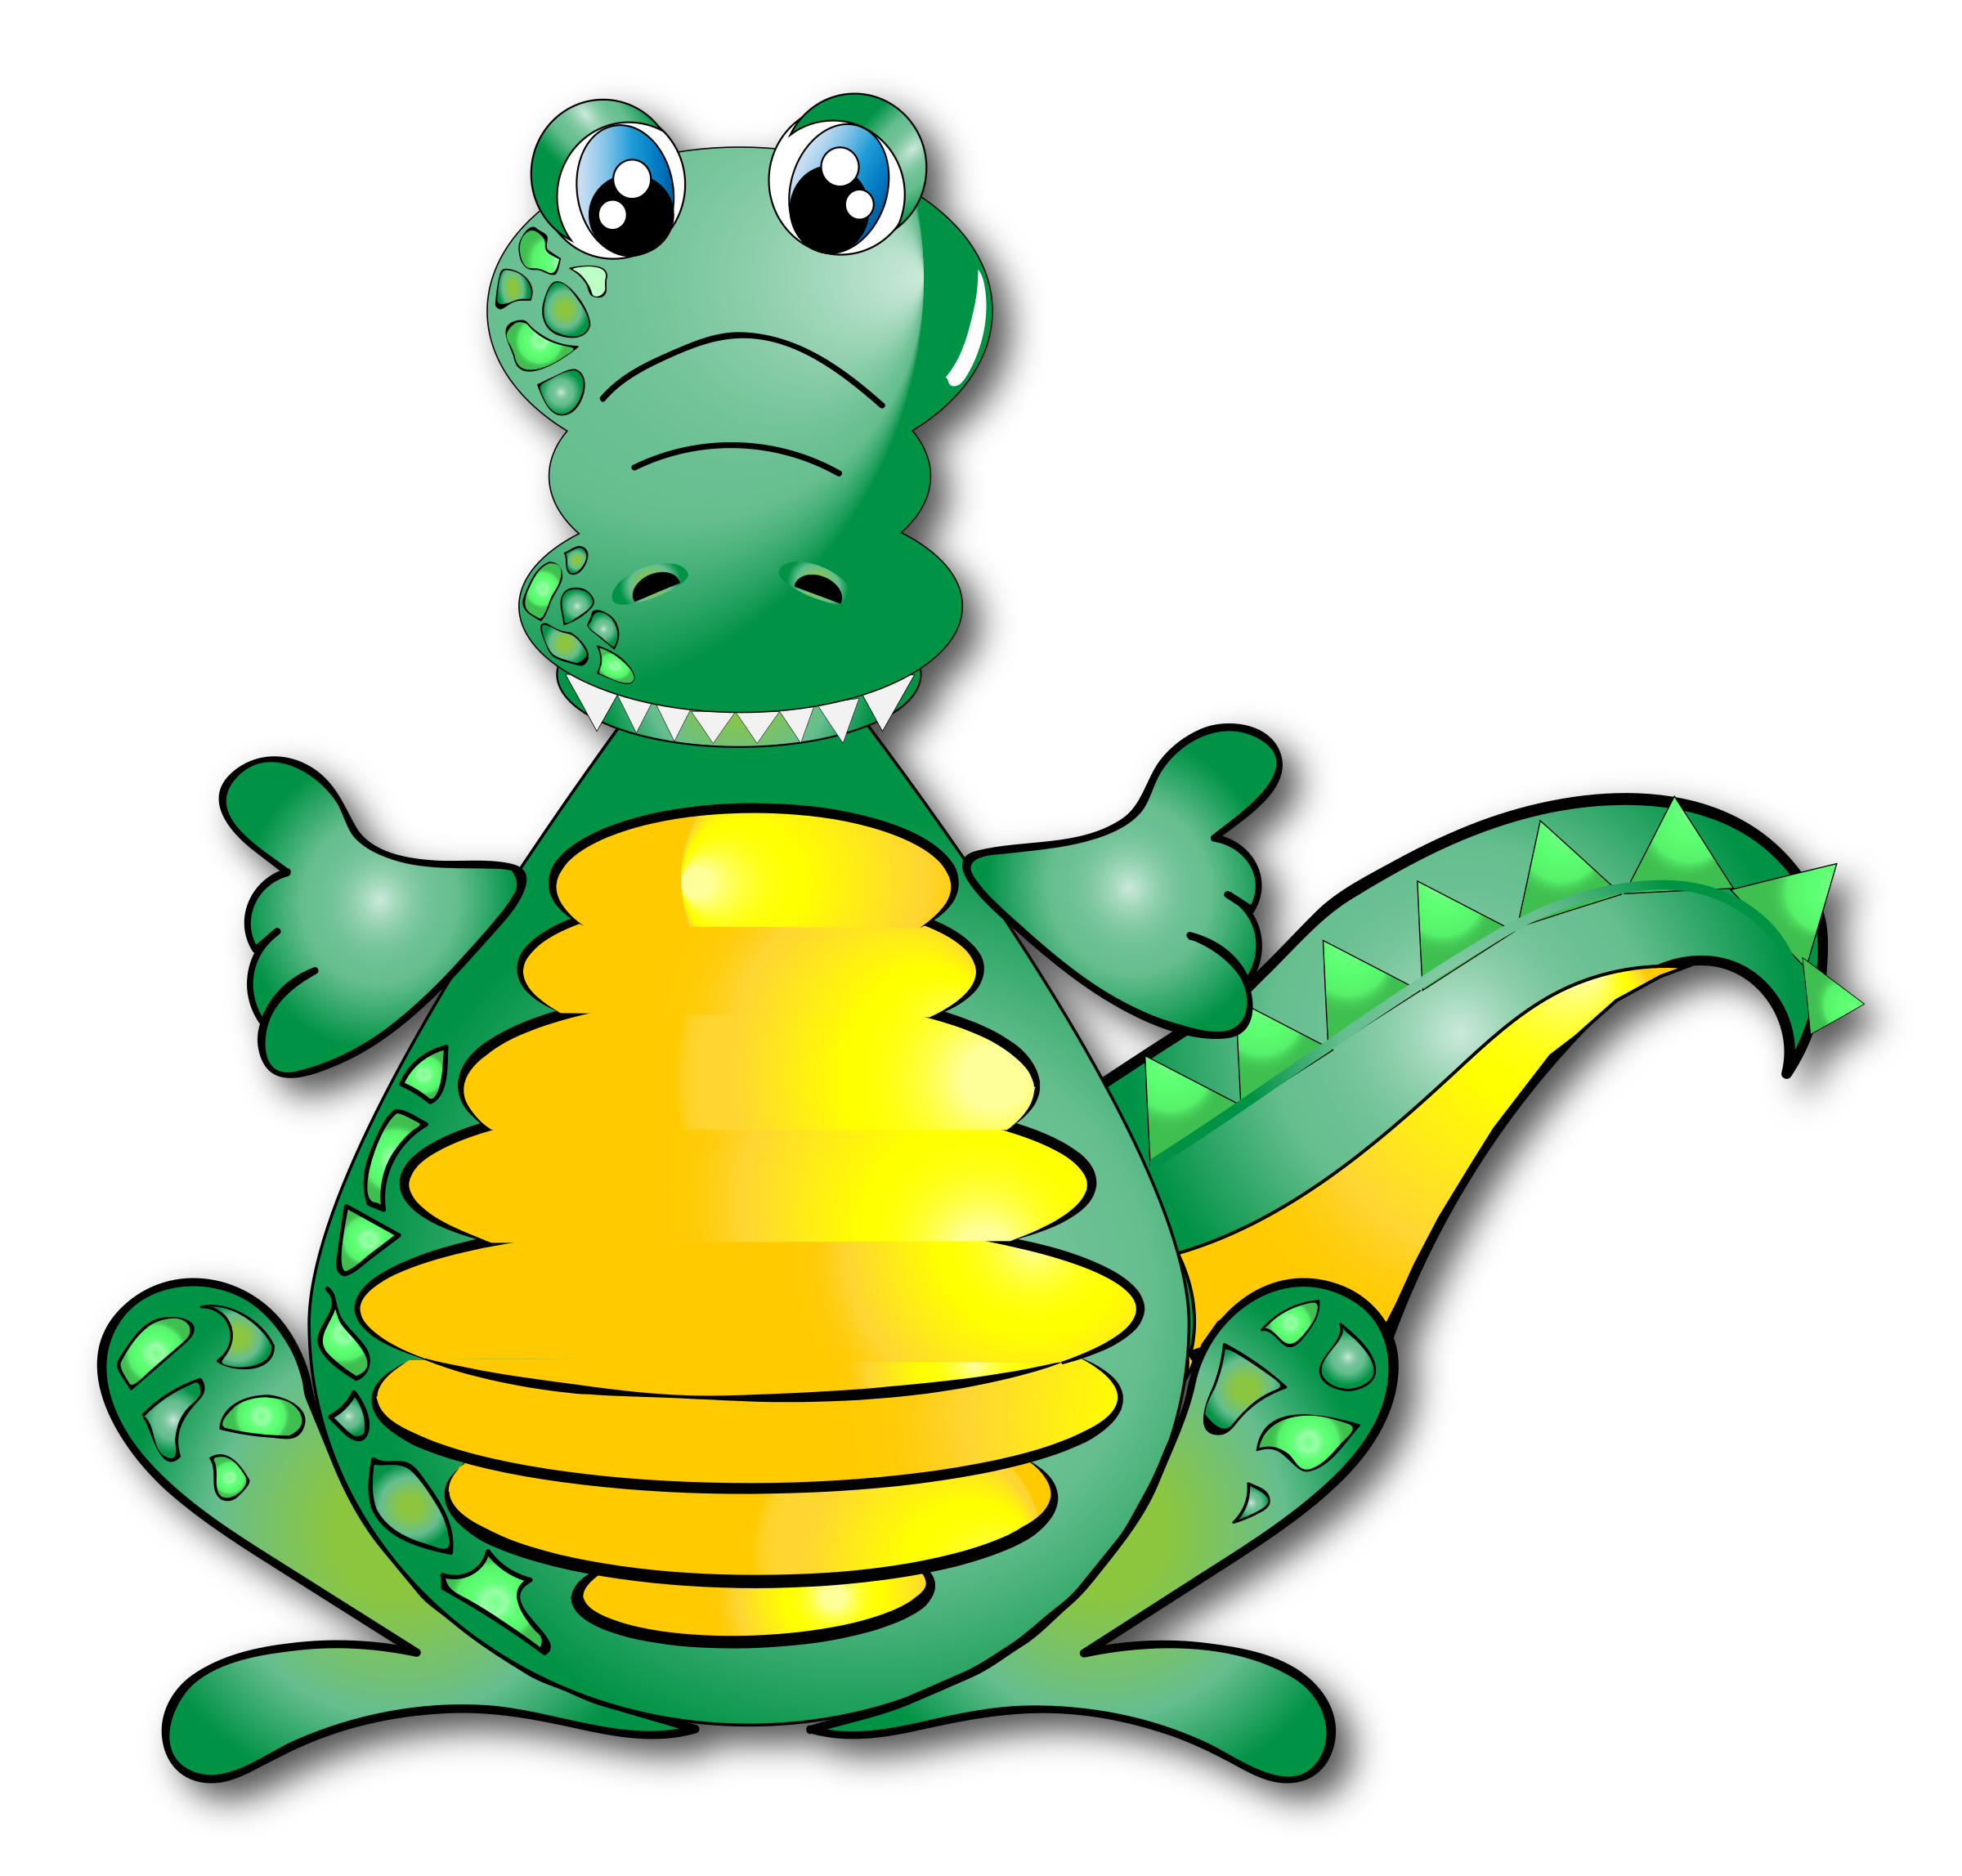 Huggable Crocodile by GDJ